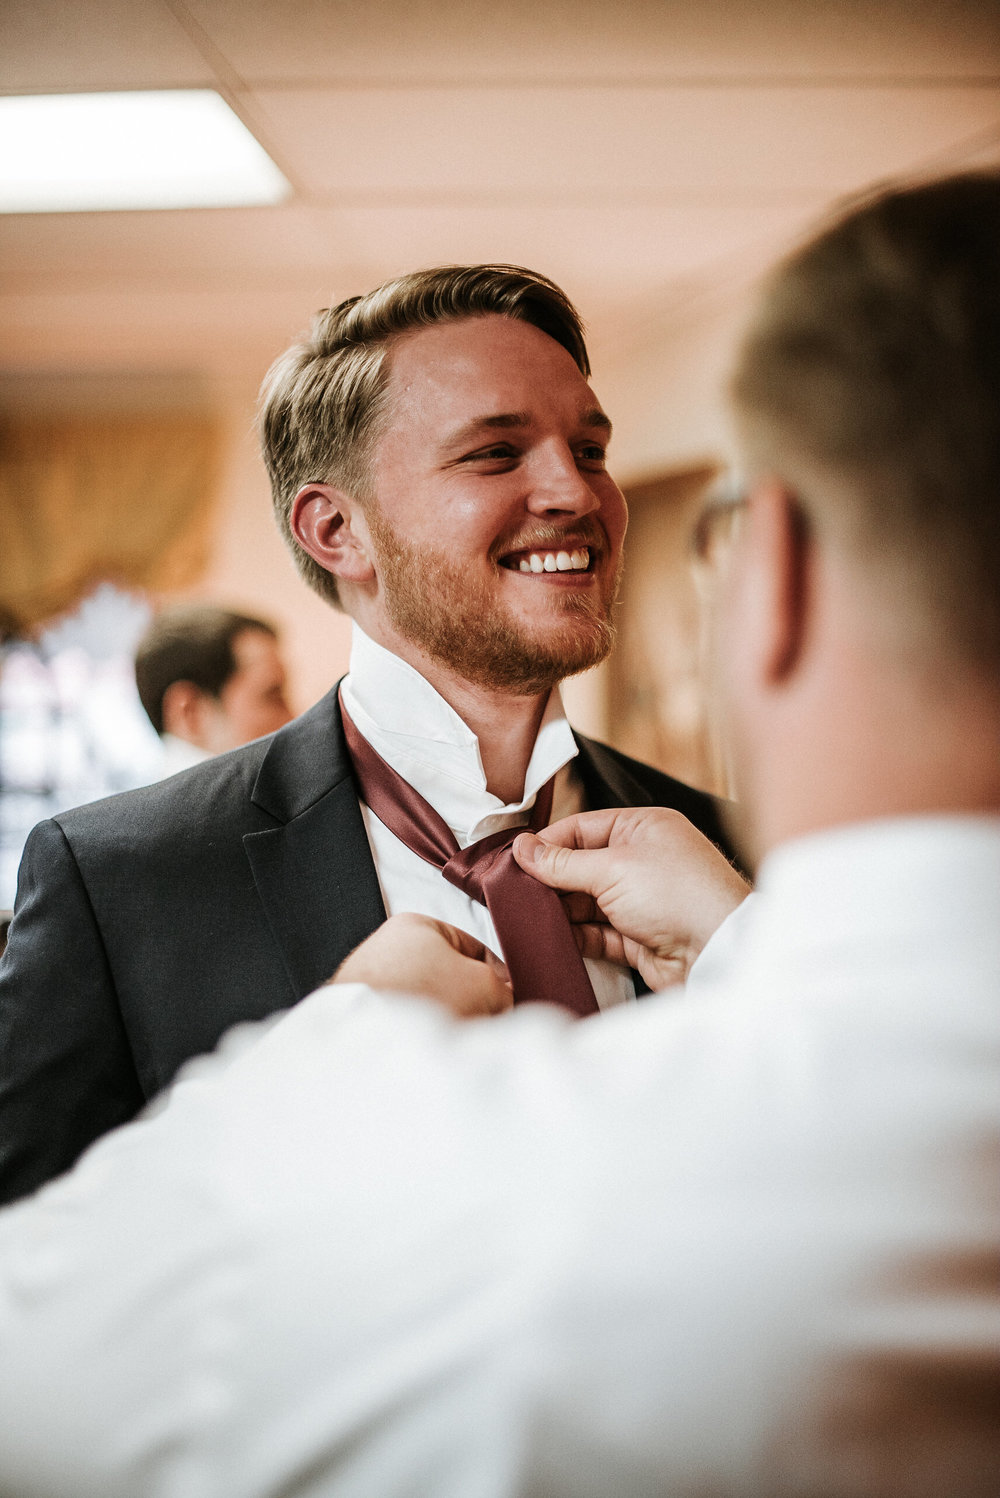 Groom getting tie tied before wedding